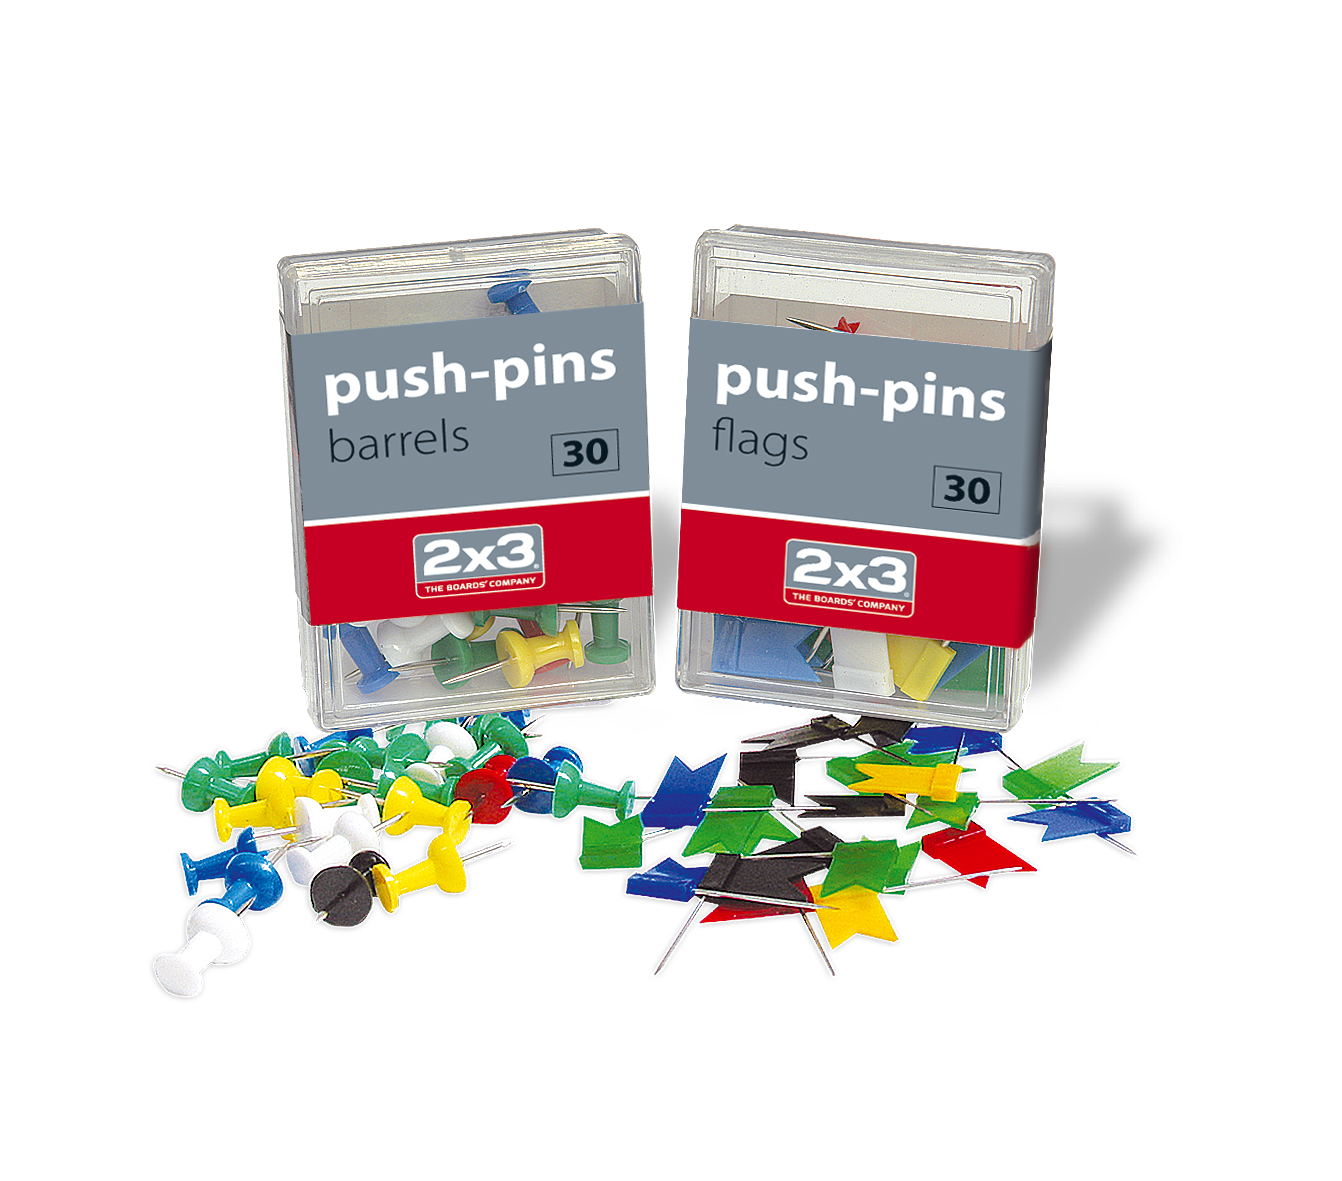 Push-pins - barrels / flags